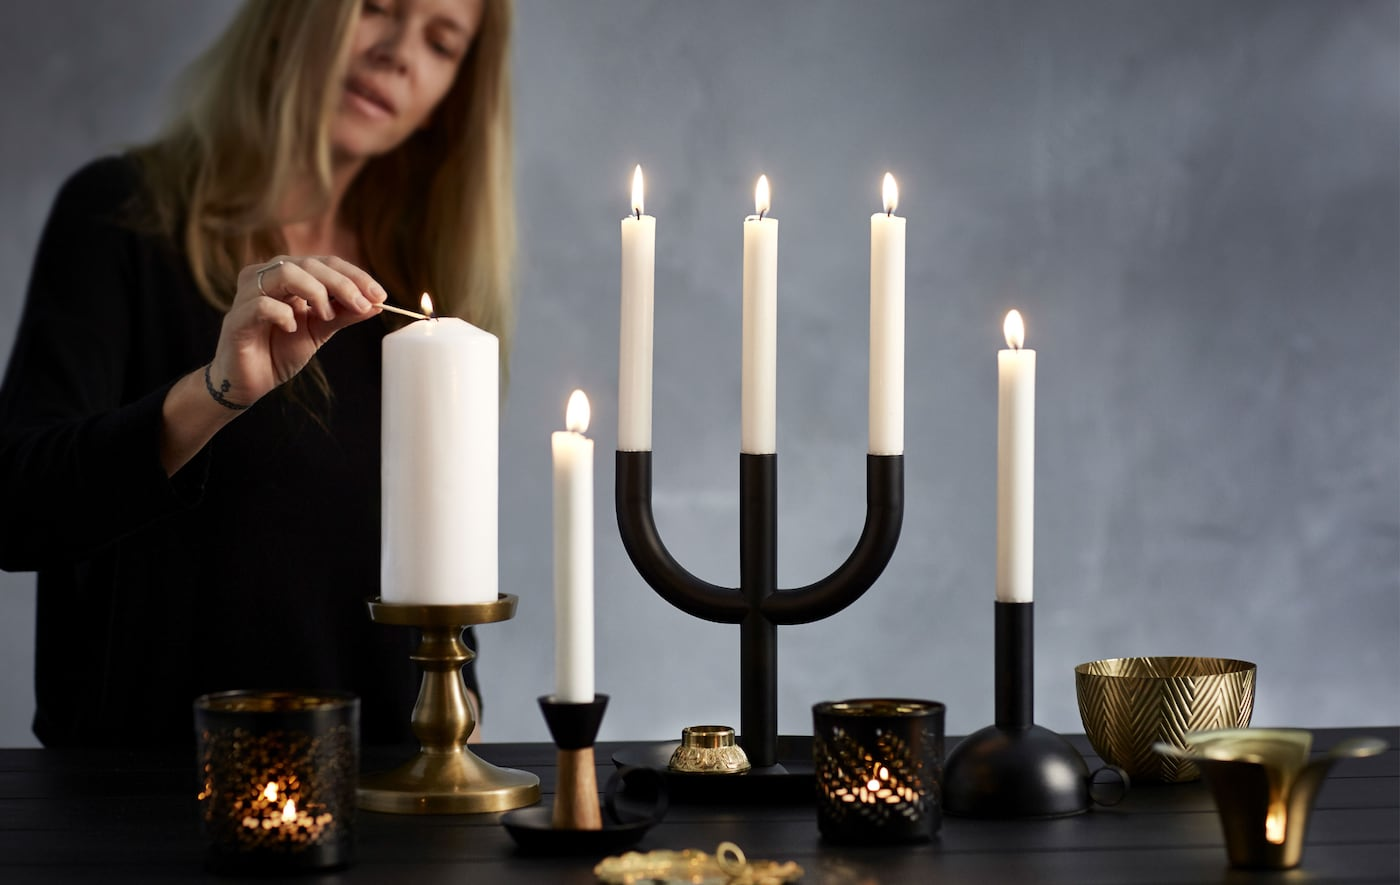 A woman lighting a block candle that is part of a candle display with a mix of candle holders in black and brass.